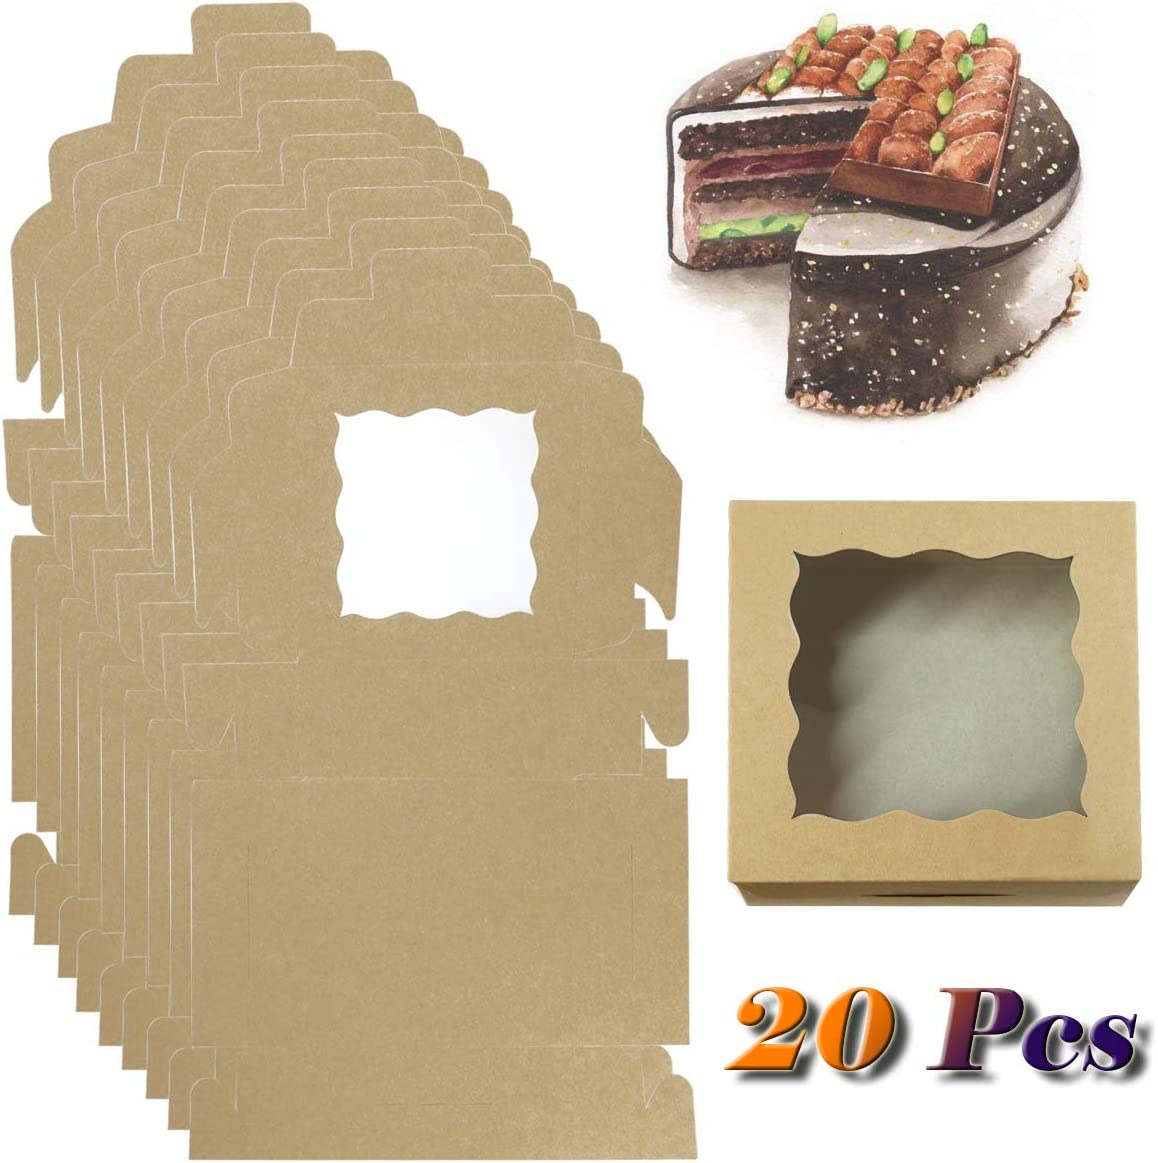 Dessert Disposable Take-Out Container Cookies Boxes Donut Pie Slice Fyess 20Pack Kraft Paper Bakery Boxes with pvc Window,Clear Display Window 6x6x2.5inch Mini Cake